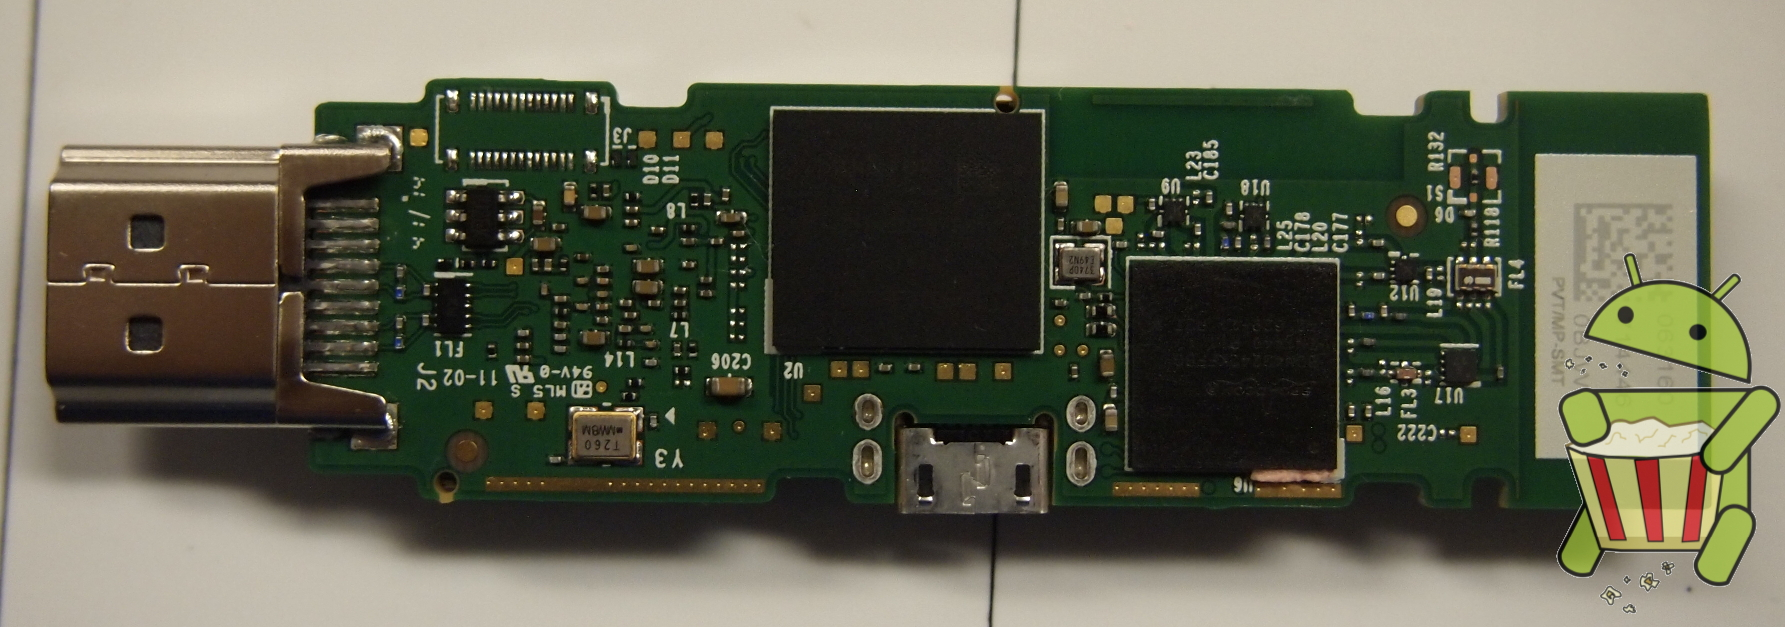 Amazon Fire TV Stick Board Bottom Pads Removed.JPG